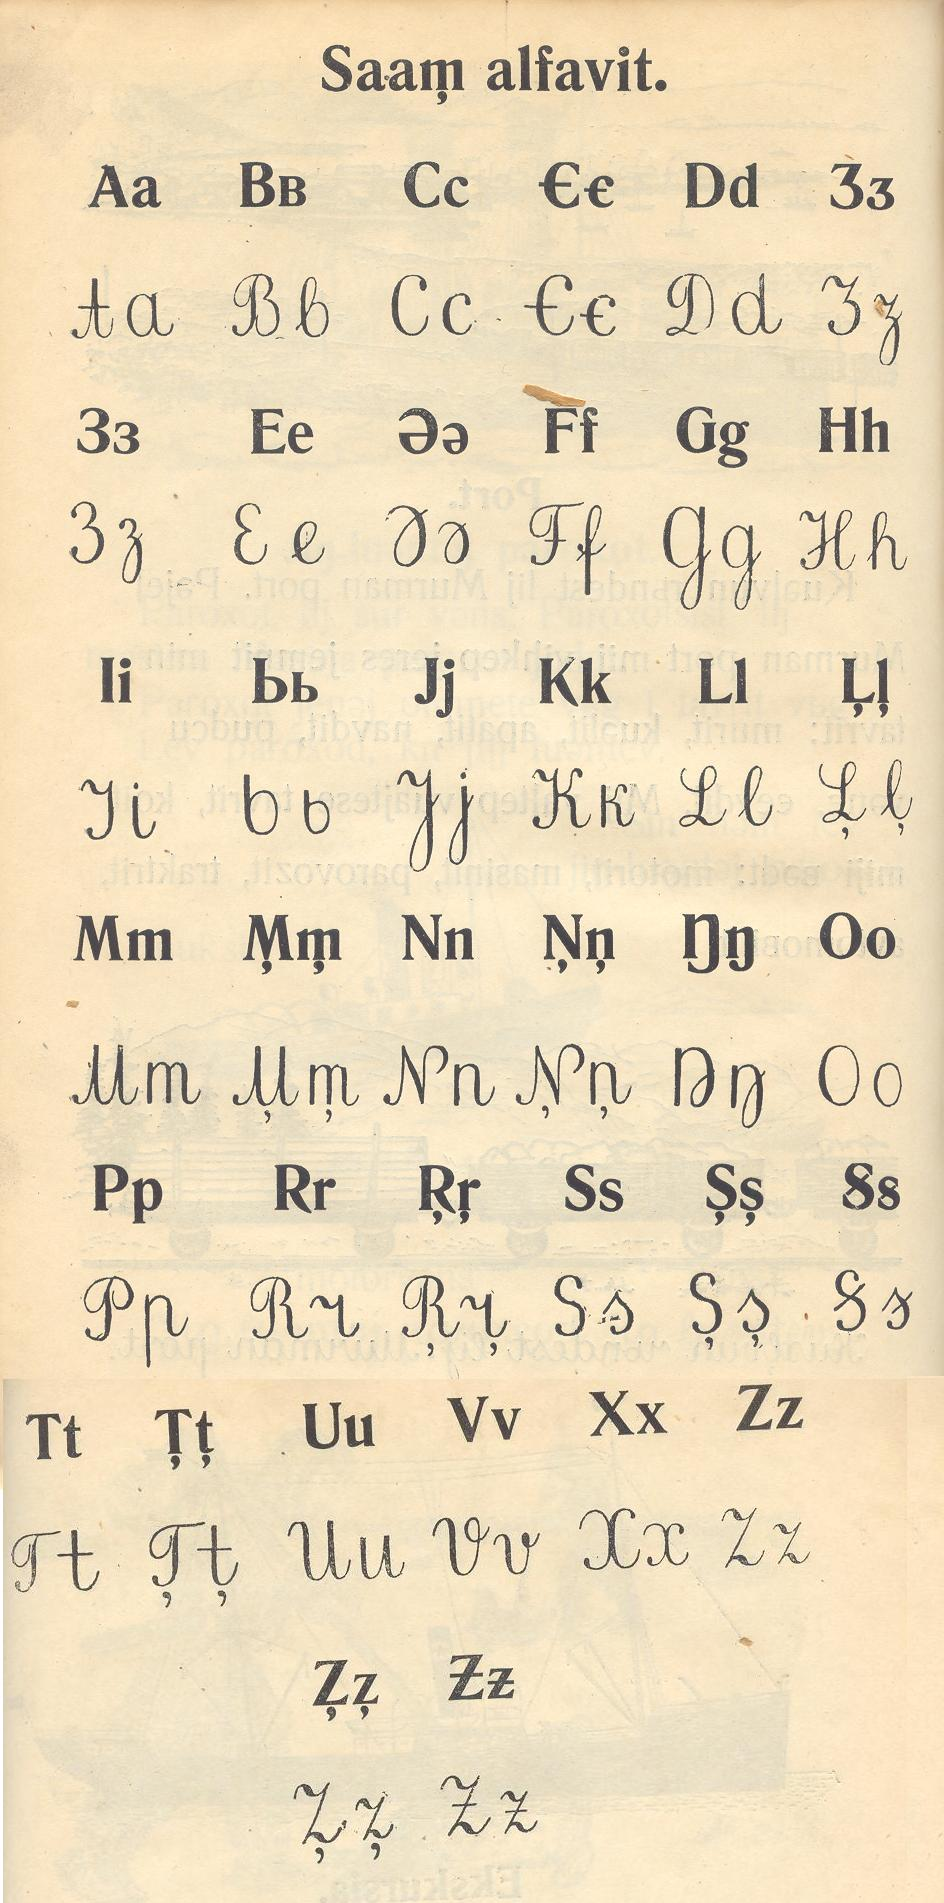 A Saami alphabet primer from USSR, 1933. Via Wikimedia Commons